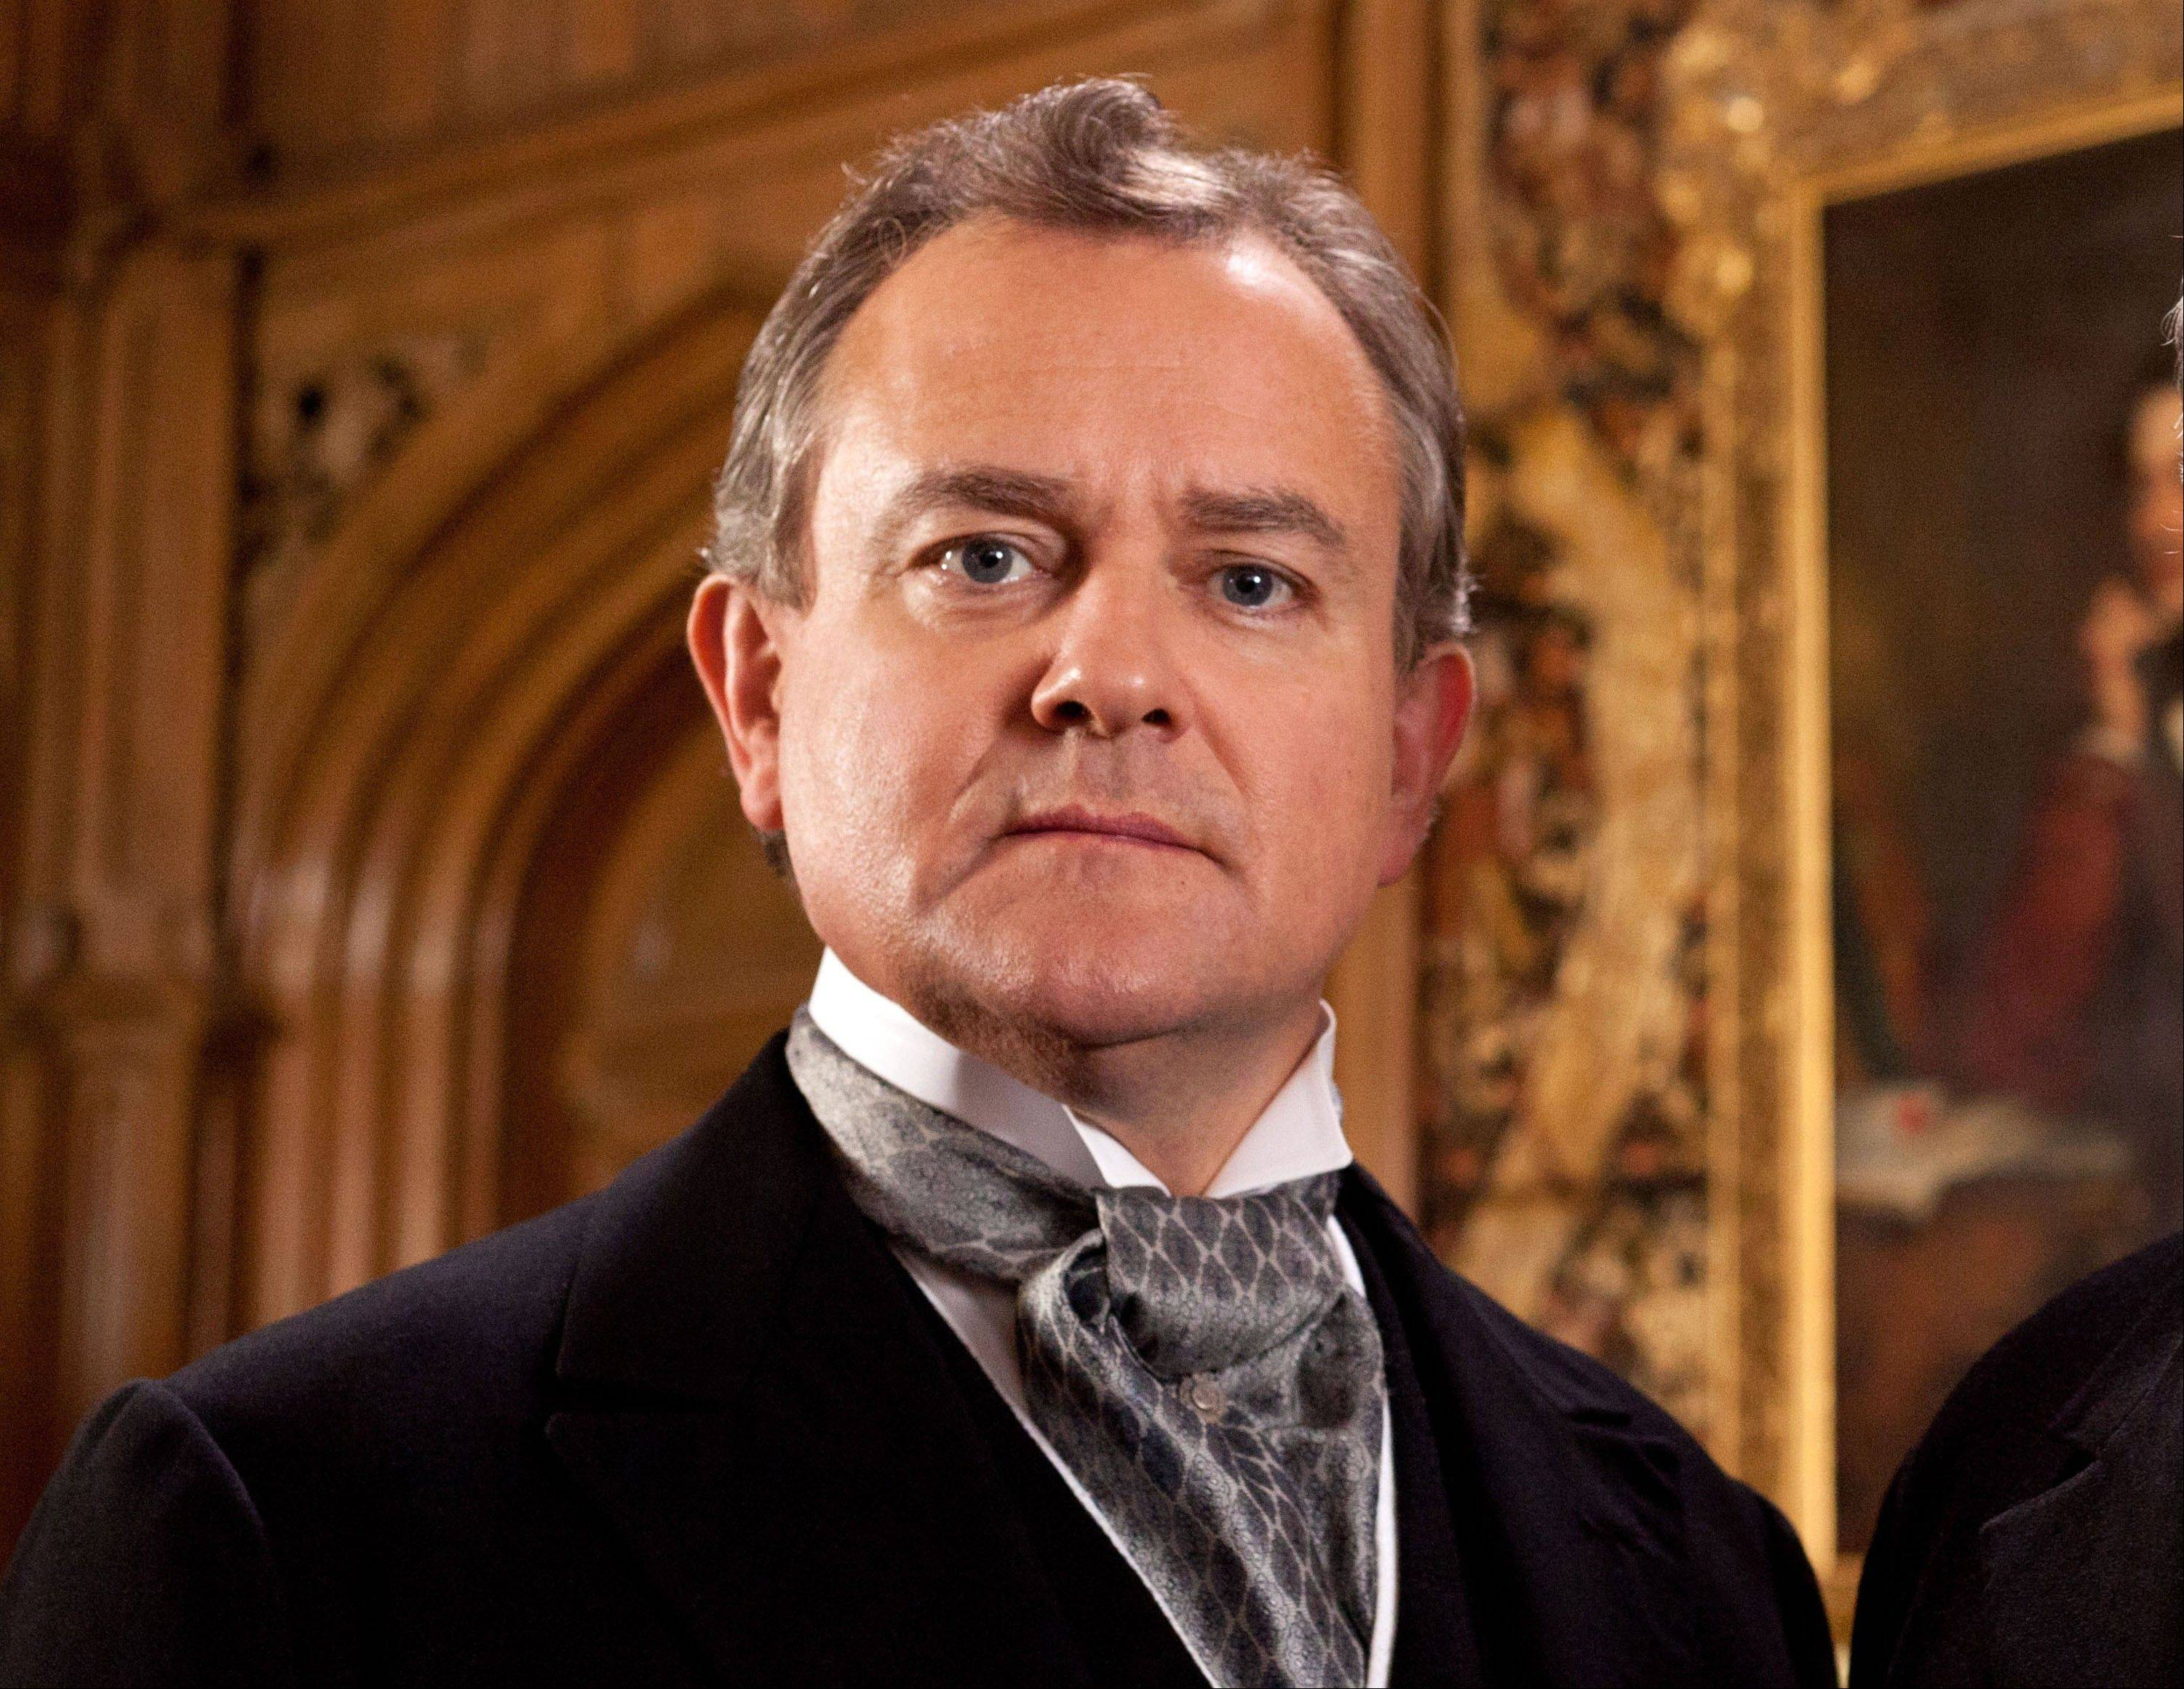 Hugh Bonneville portrays the patriarchal Lord Grantham in the series, �Downton Abbey.� The season three finale airs today on PBS.